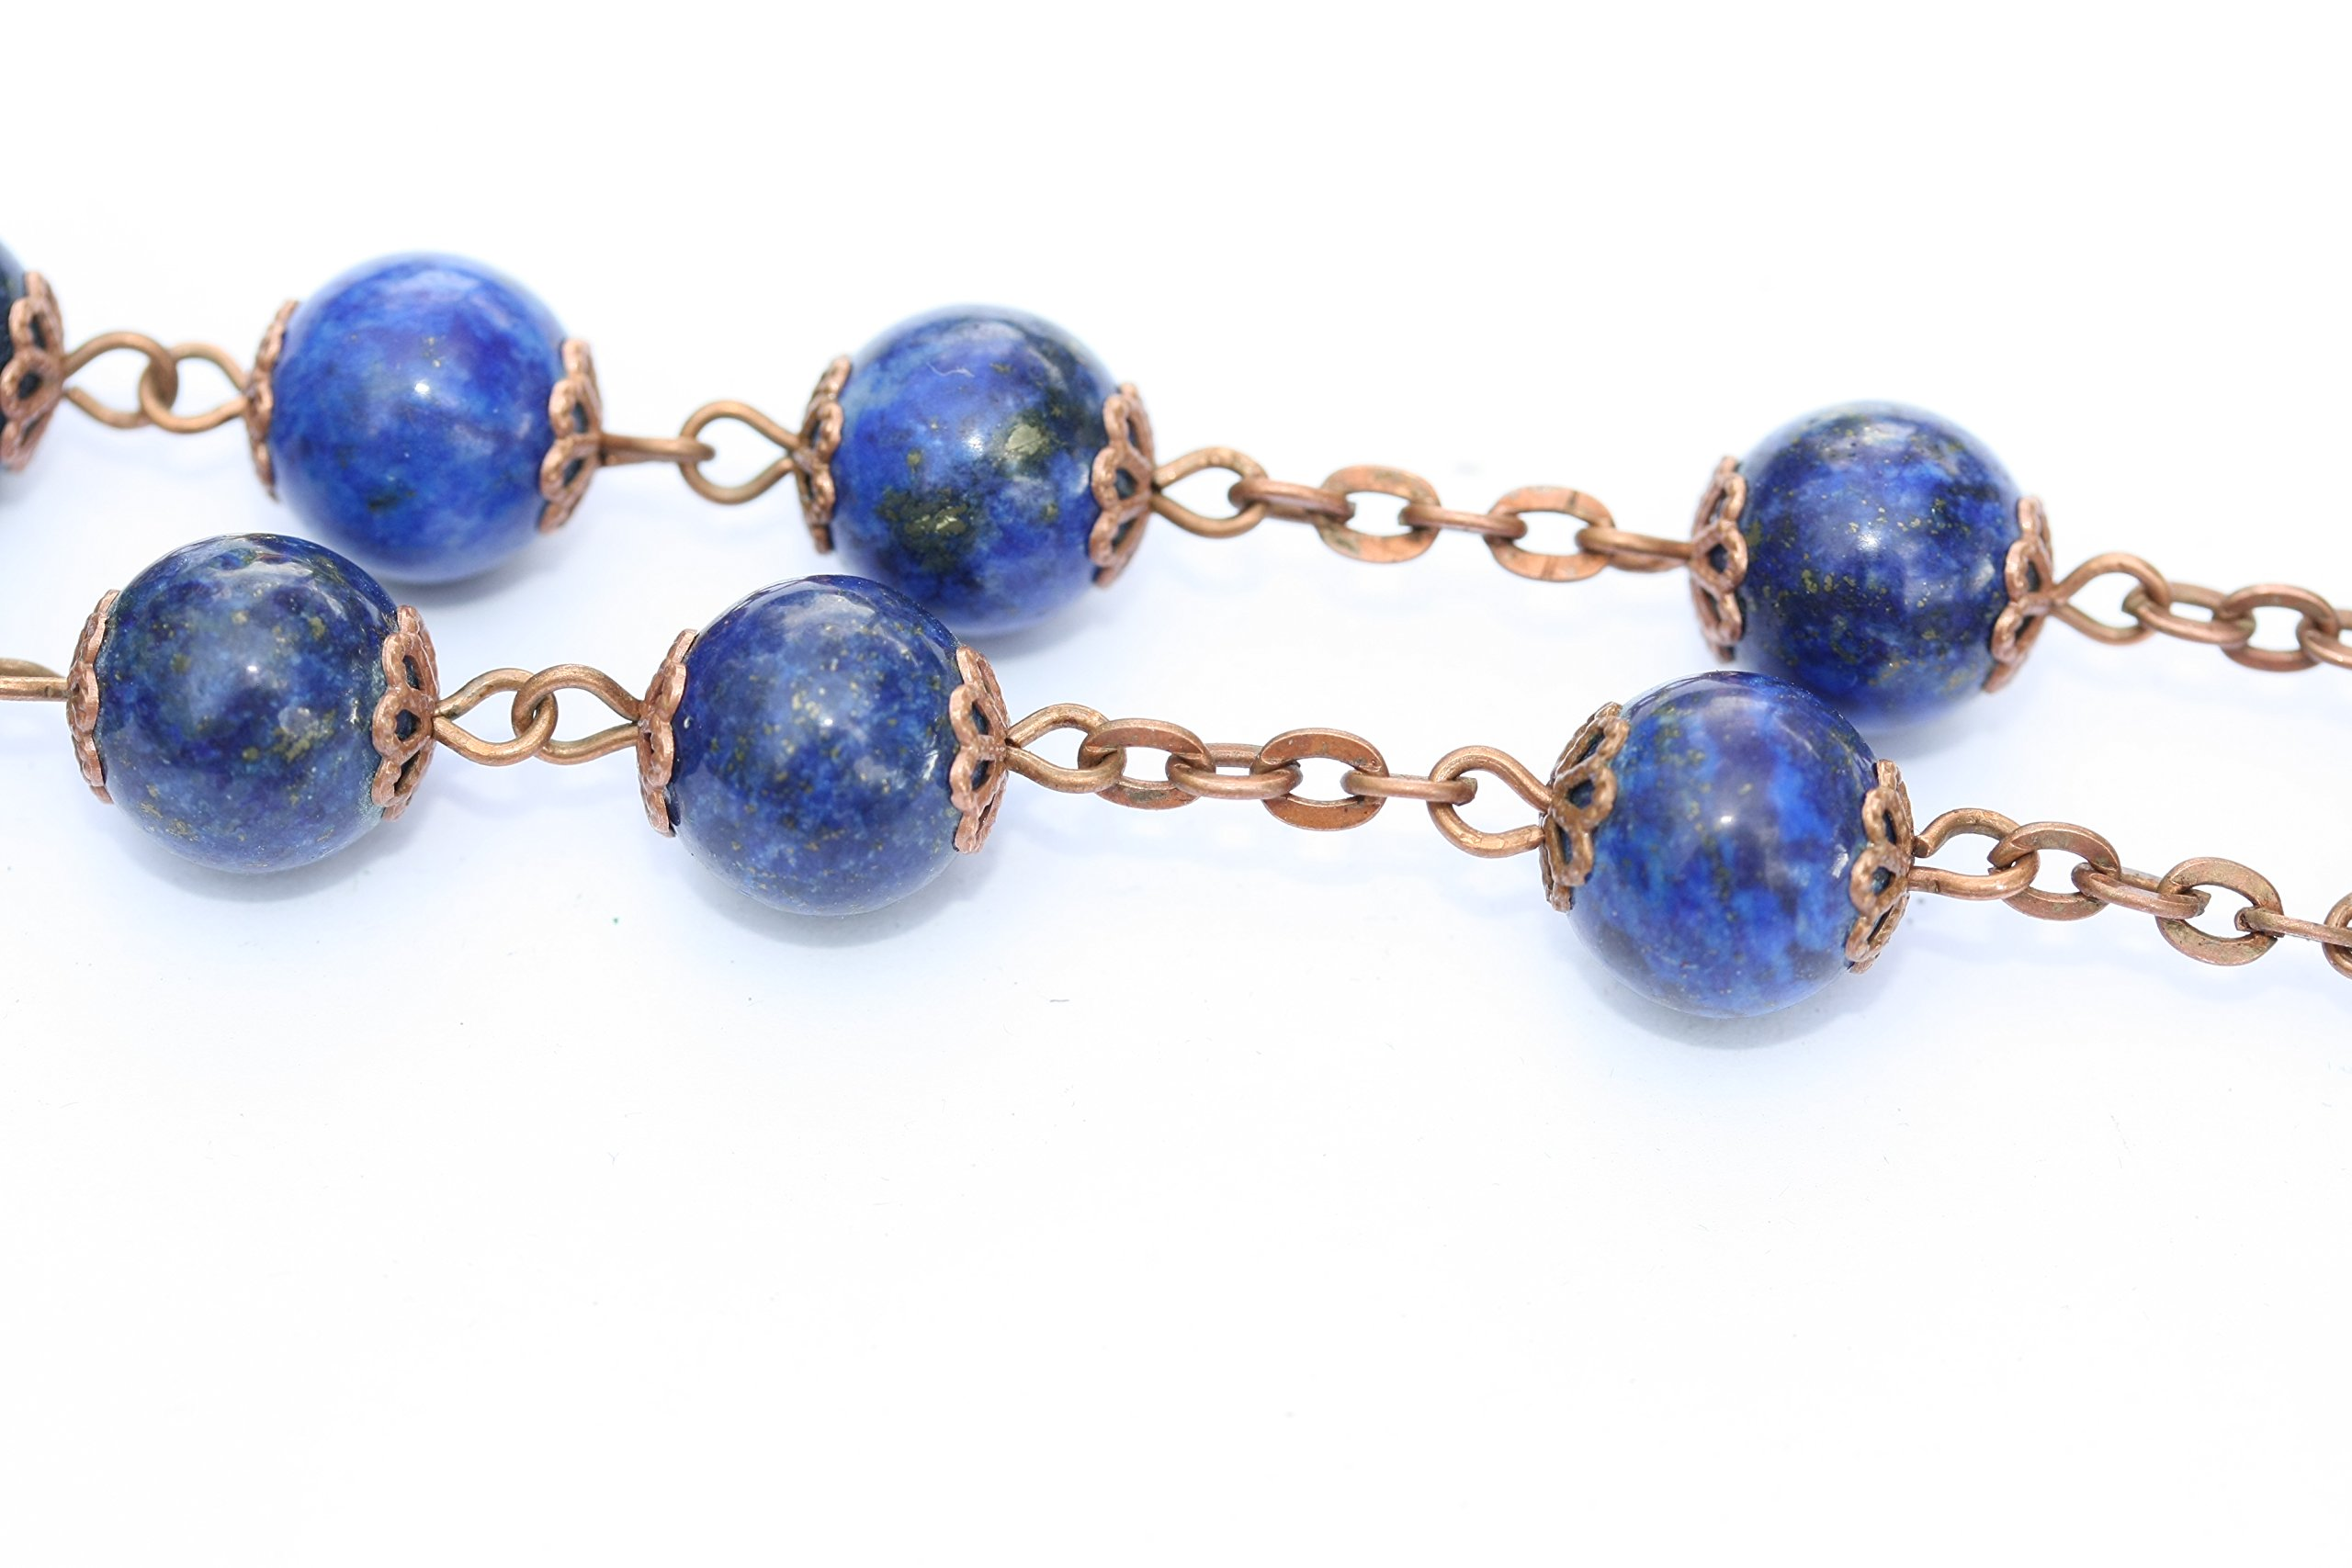 Large Genuine Lapis and Copper 10mm 5 Decade Natural Stone Bead Rosary Made in Oklahoma by Oklahoma Rosaries (Image #5)